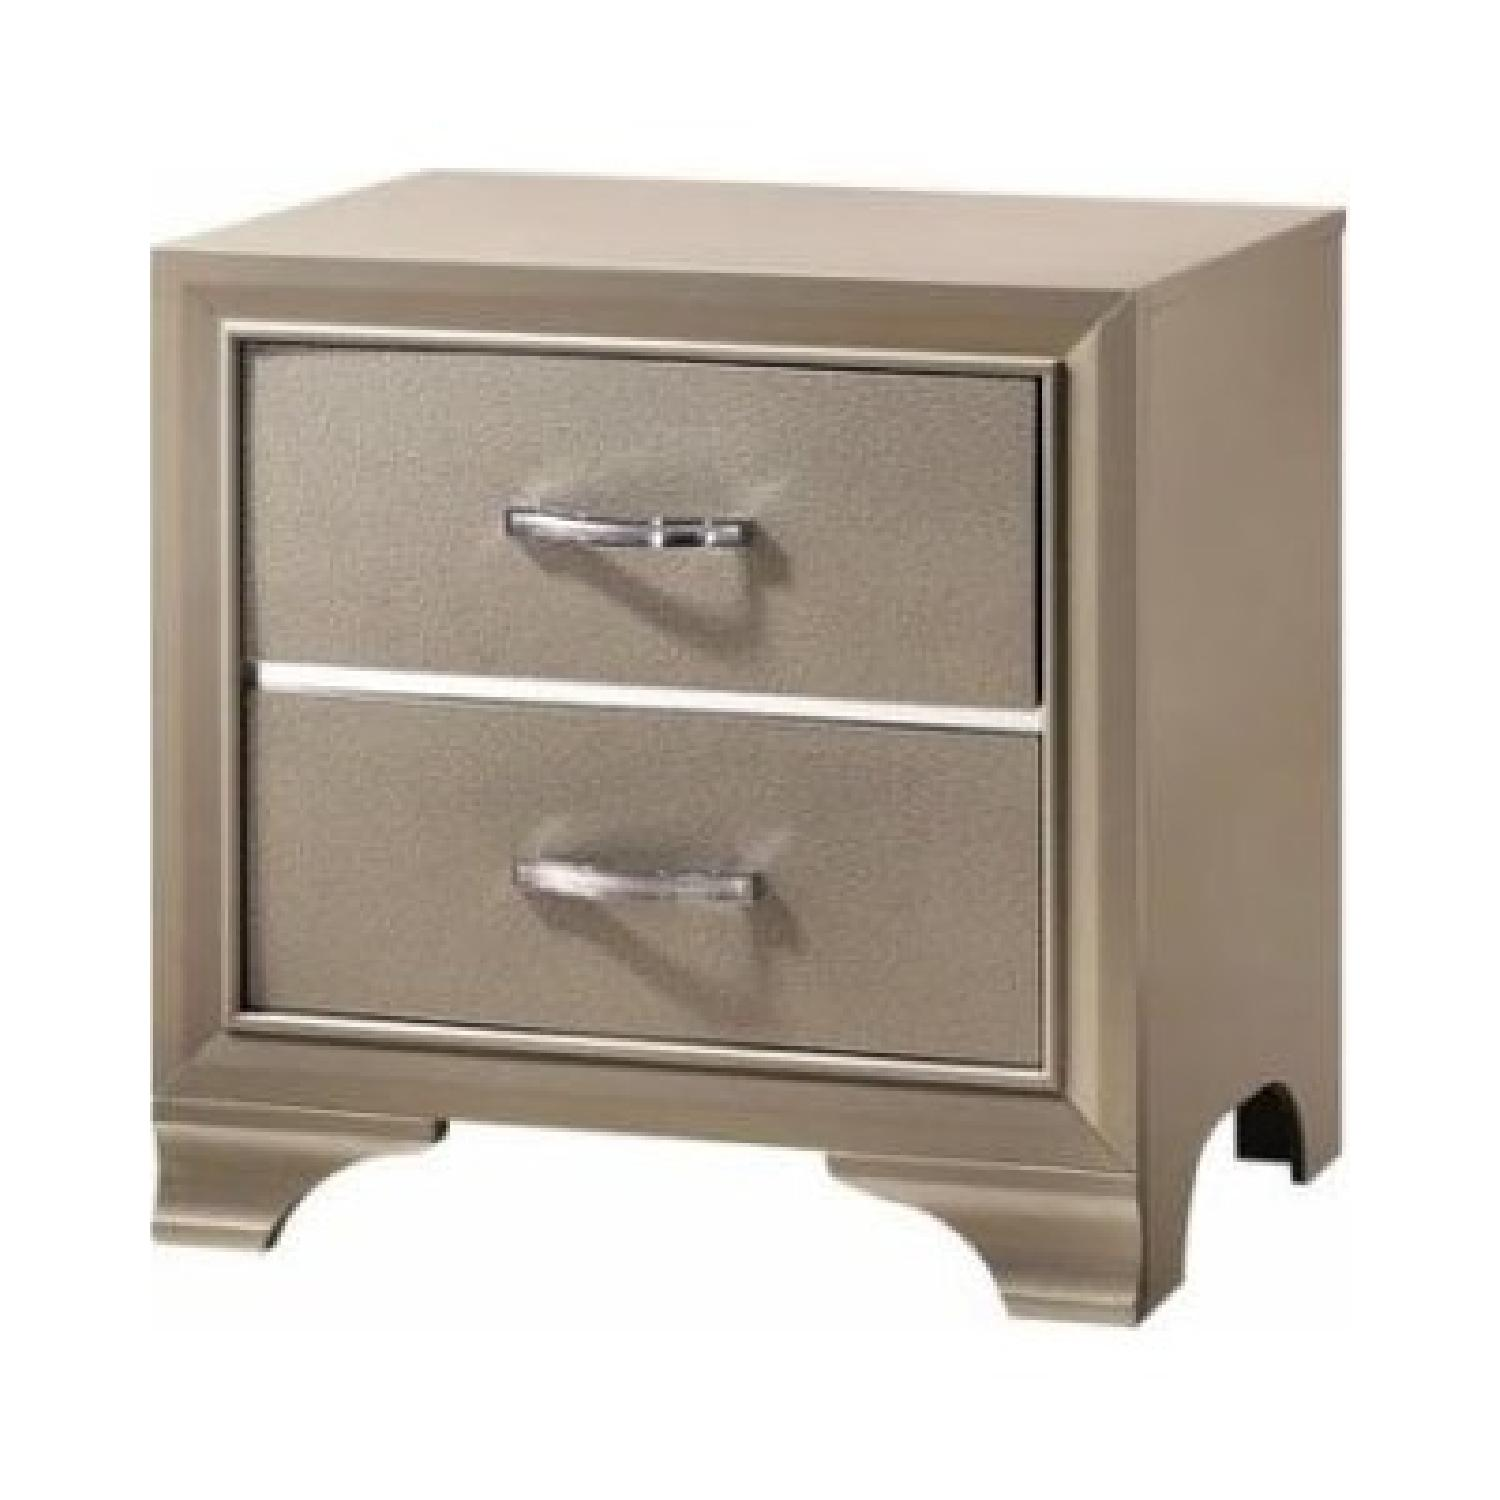 Champagne Gold Leatherette Nightstand w/ Sparkles